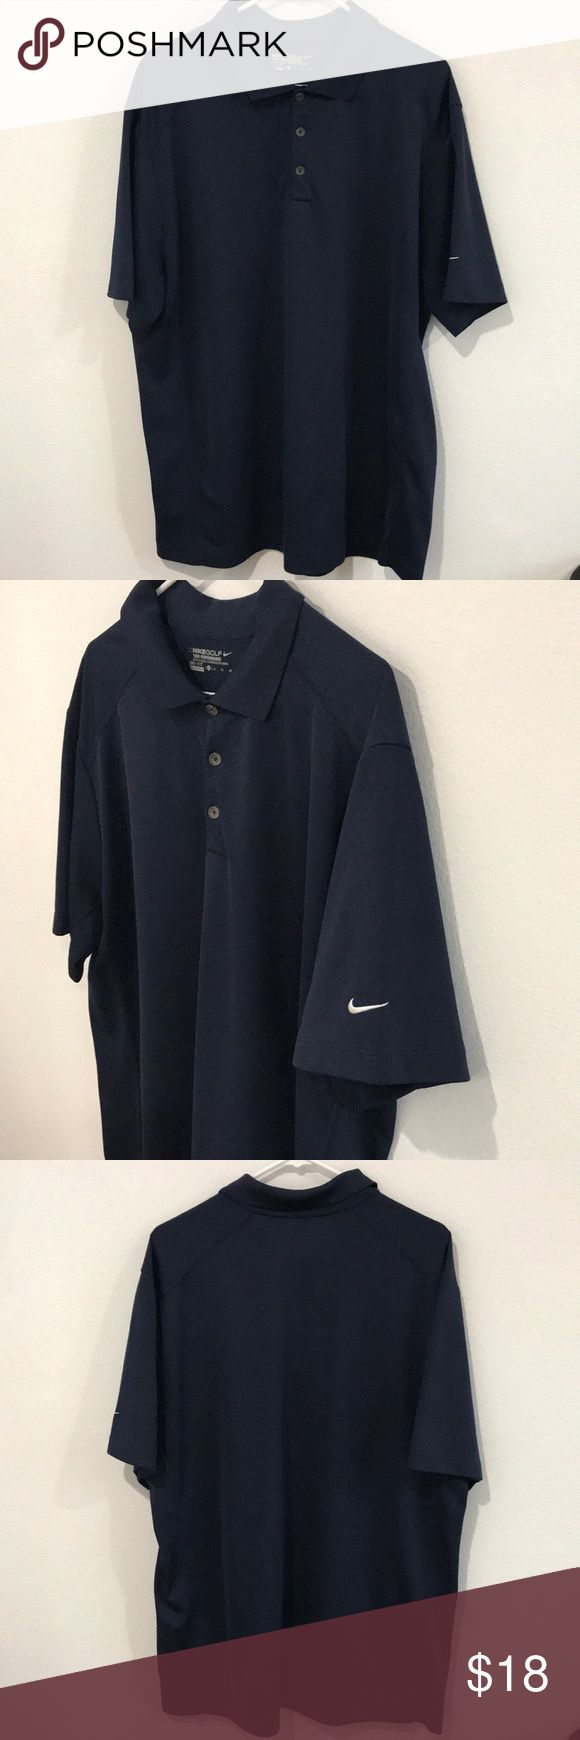 Nike Golf Tour Performance Dri-Fit Polo Shirt Excellent Condition   No rips   No stains   No holes Nike Shirts Polos